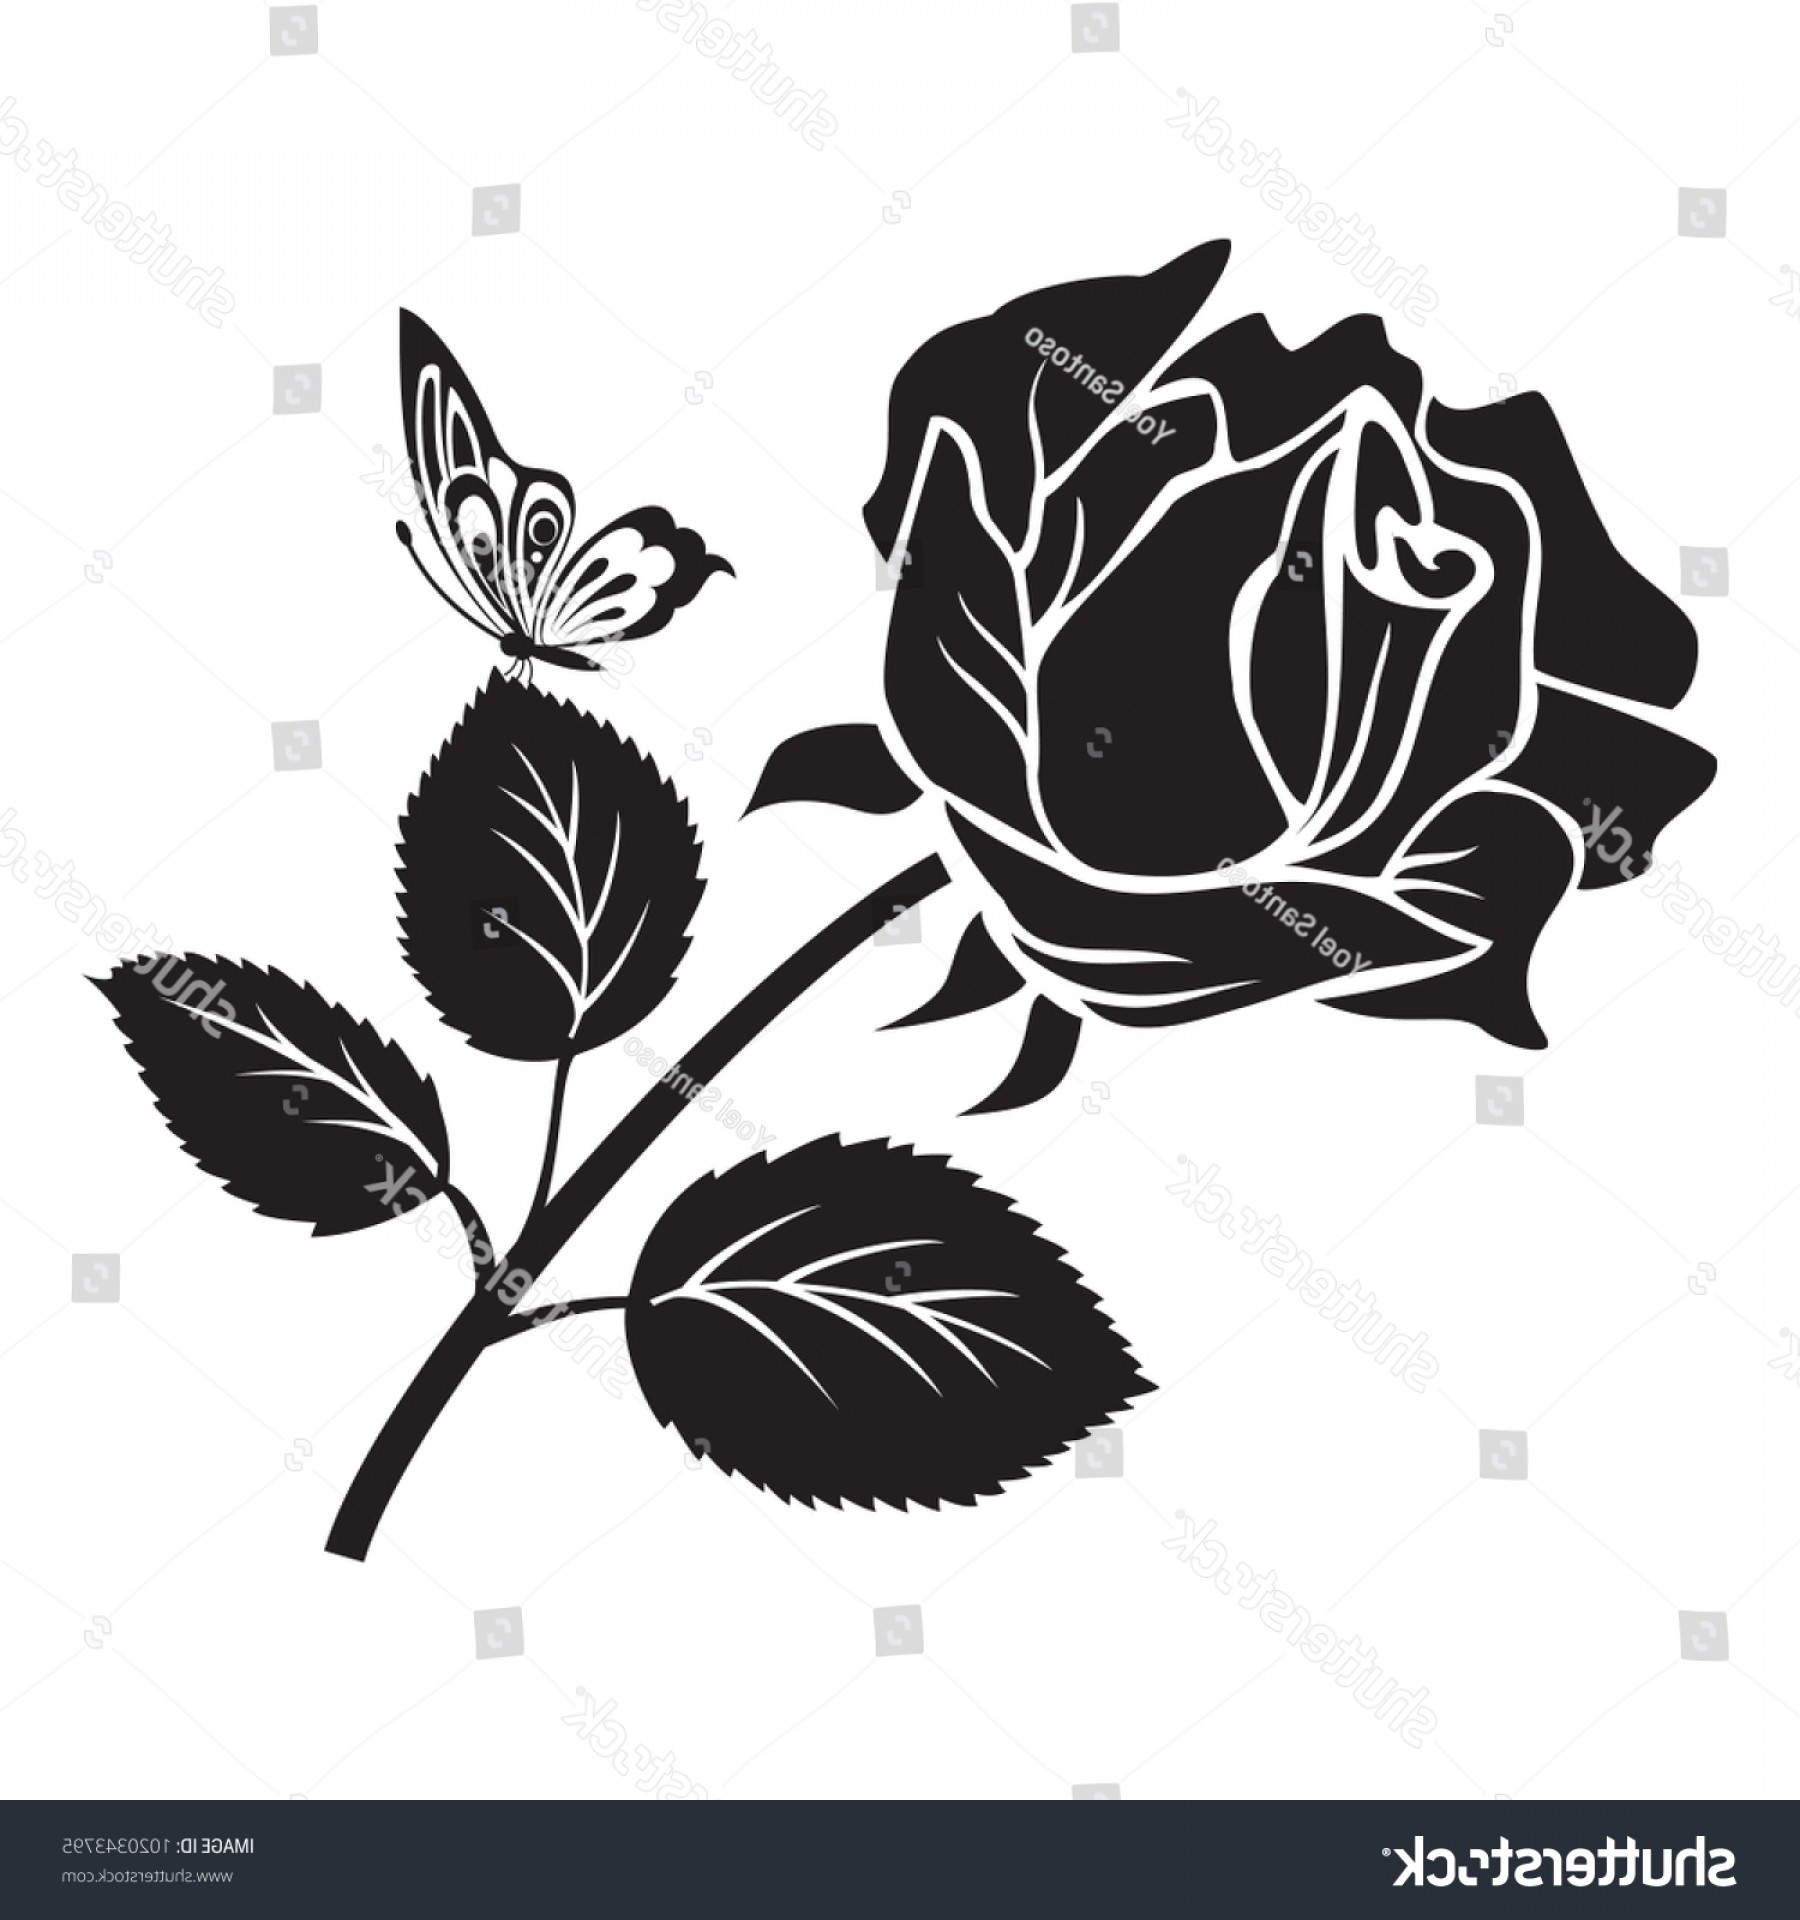 Butter Fly And Flower Vector Black And White: Black Rose Flower Butterfly Vector Illustration